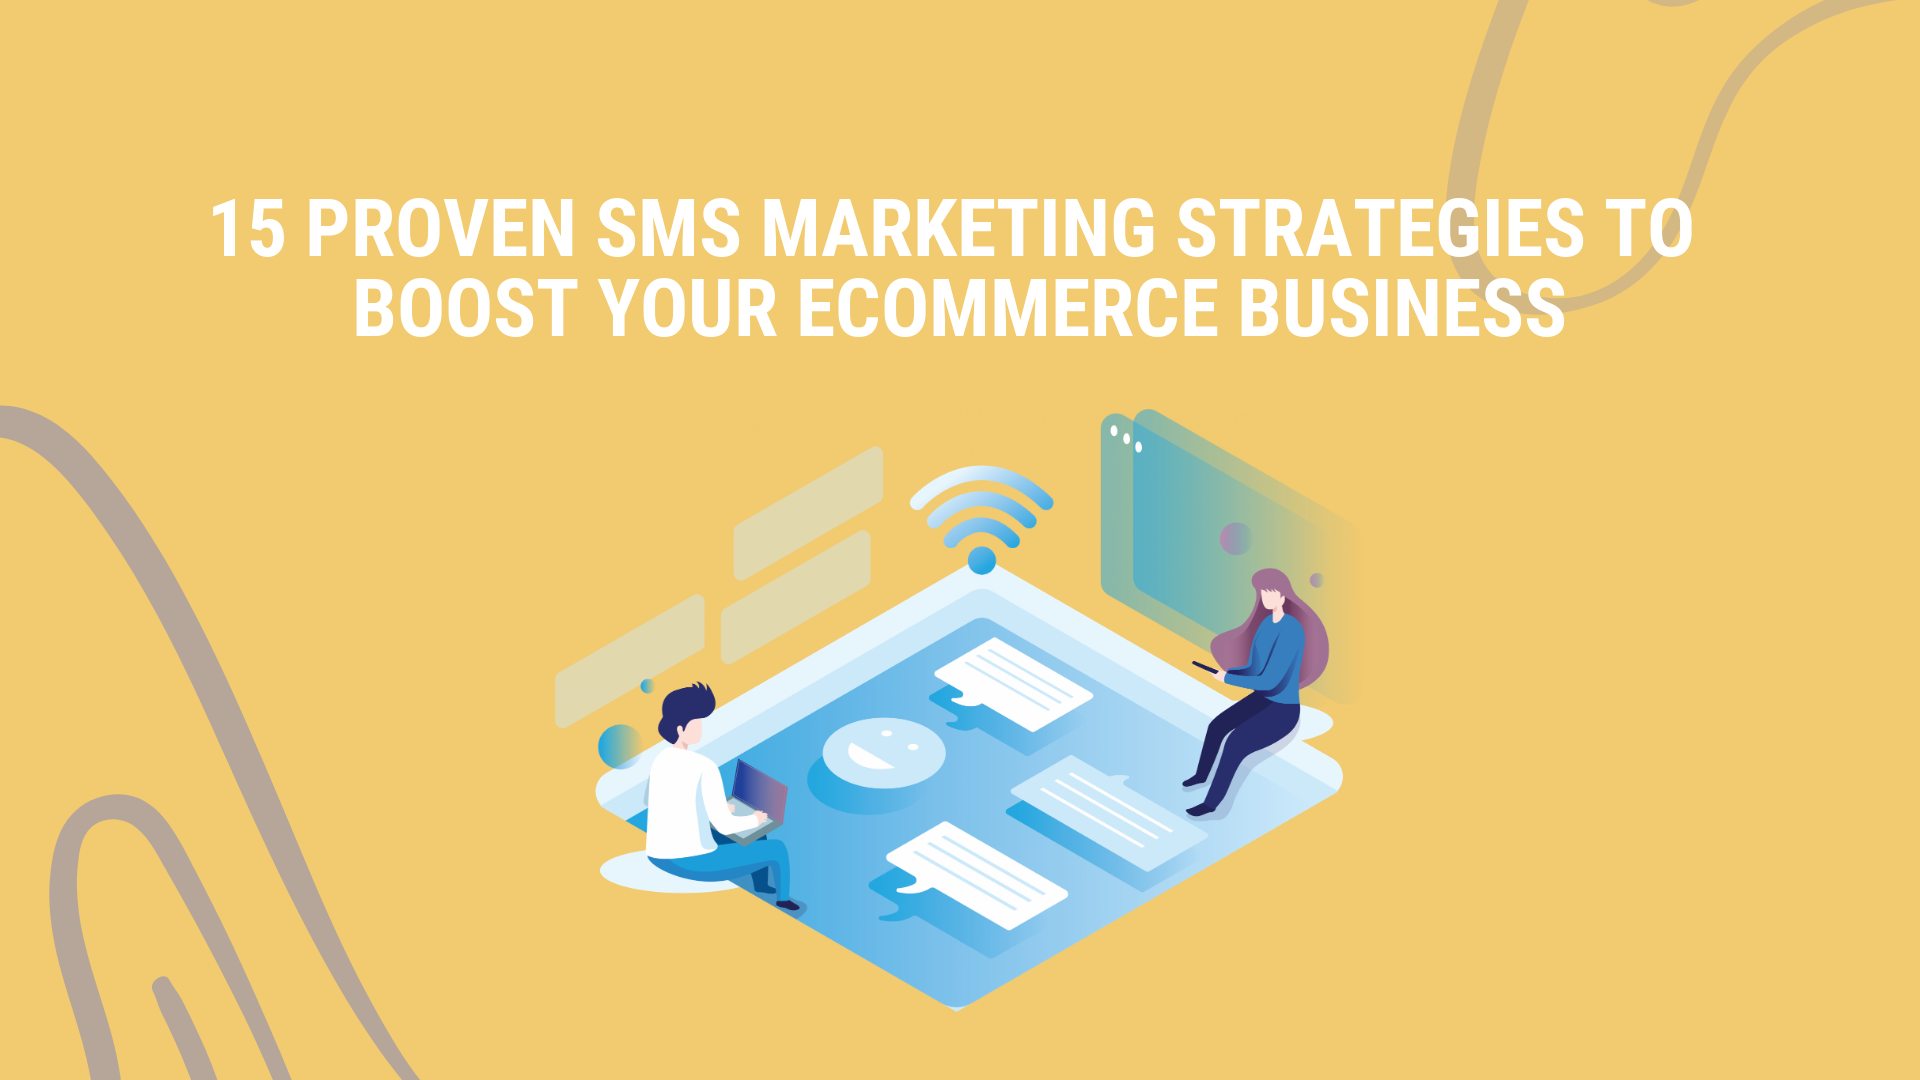 15 Proven SMS Marketing Strategies to Boost your E-commerce Business